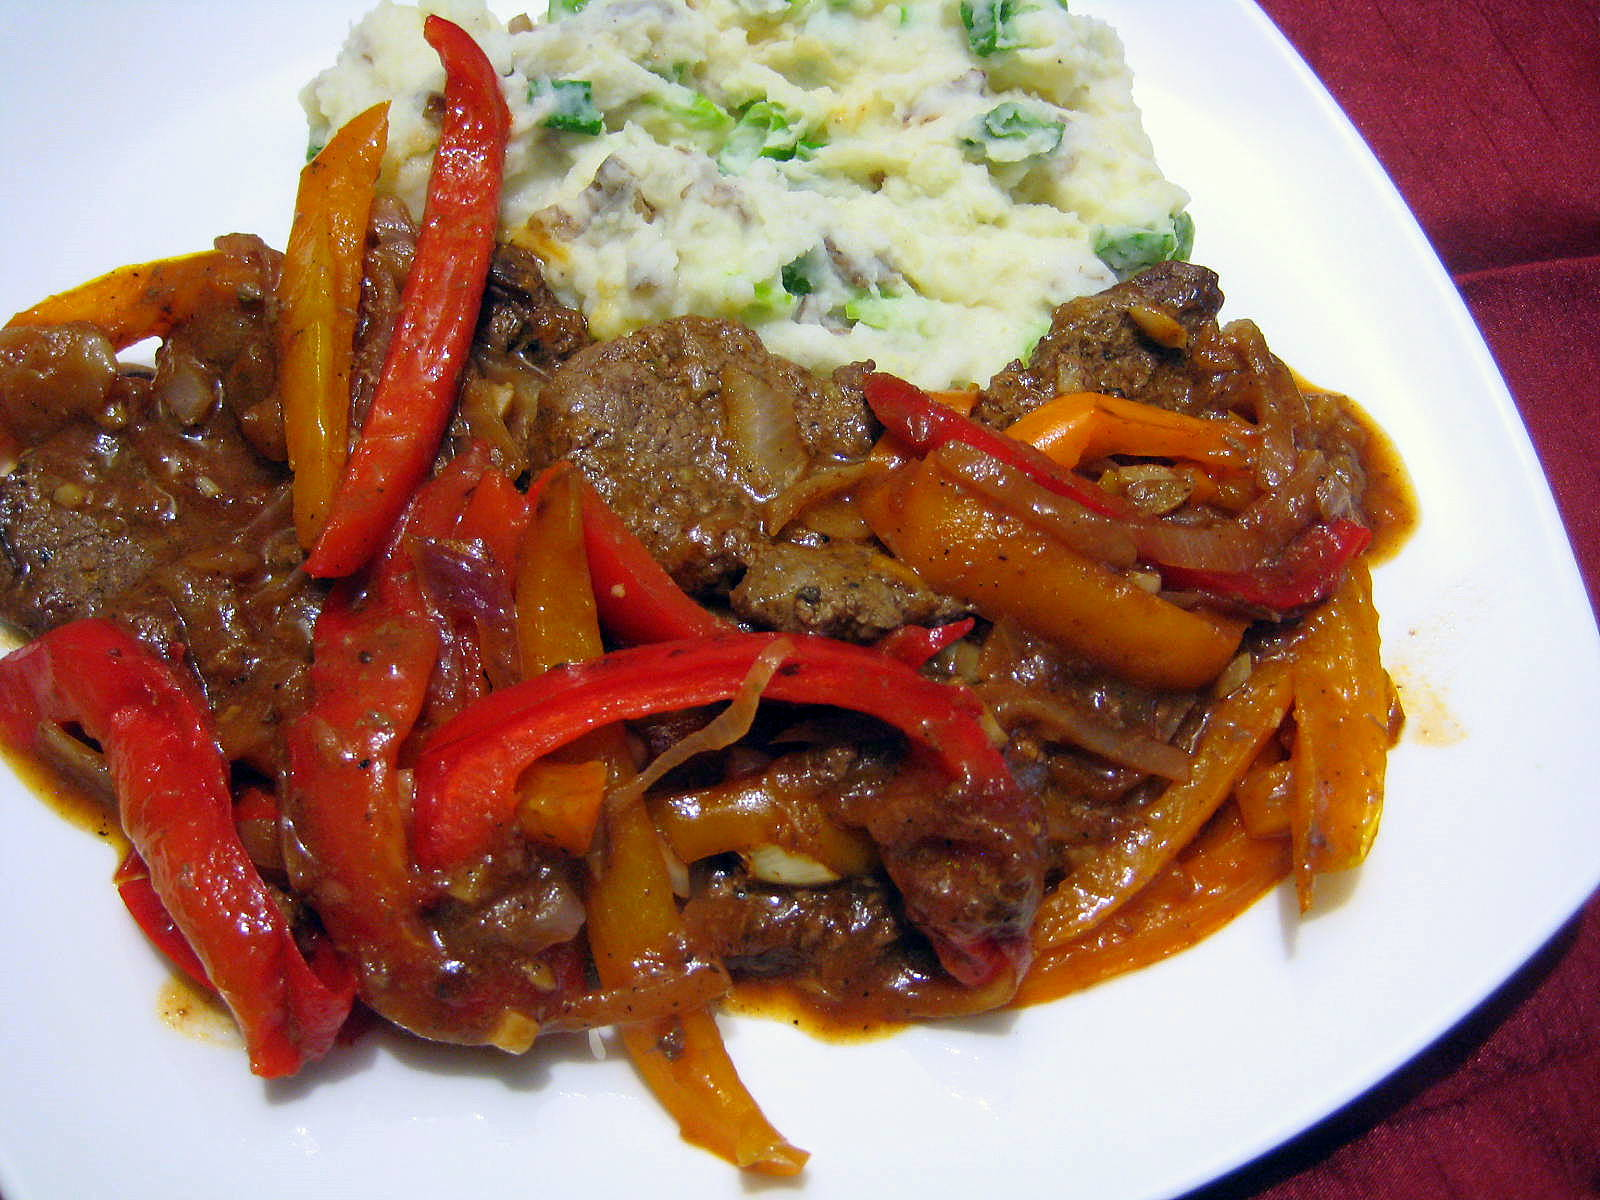 STEAK, PEPPERS & ONIONS IN A BROWN SAUCE